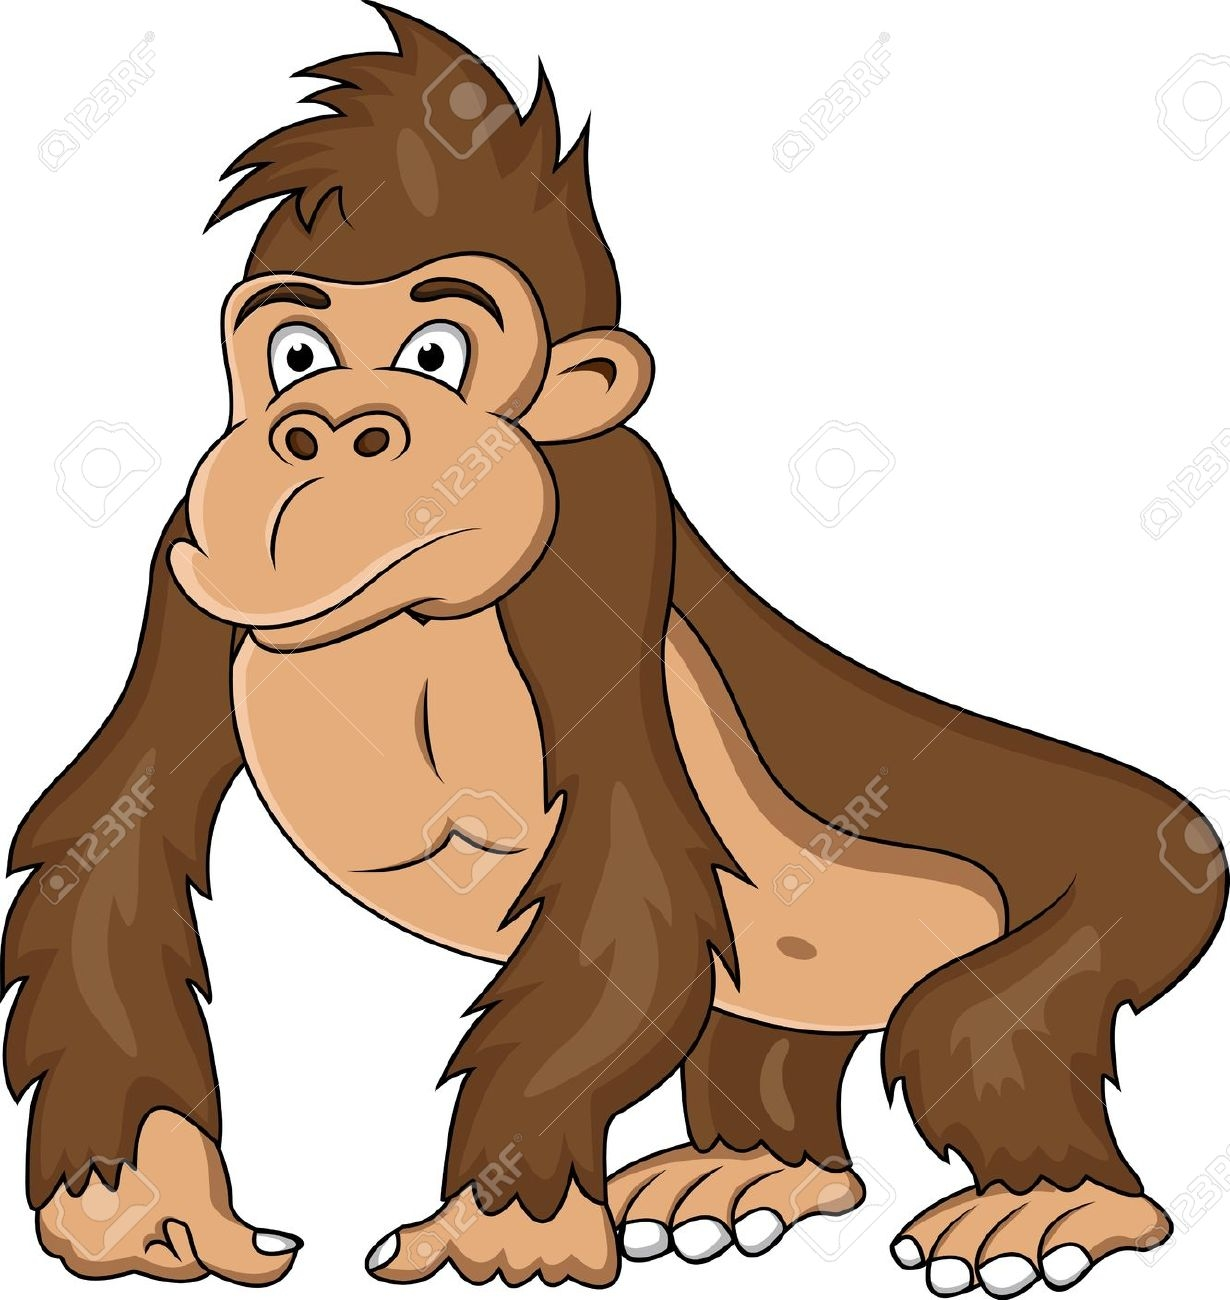 Fresh design digital collection. Ape clipart